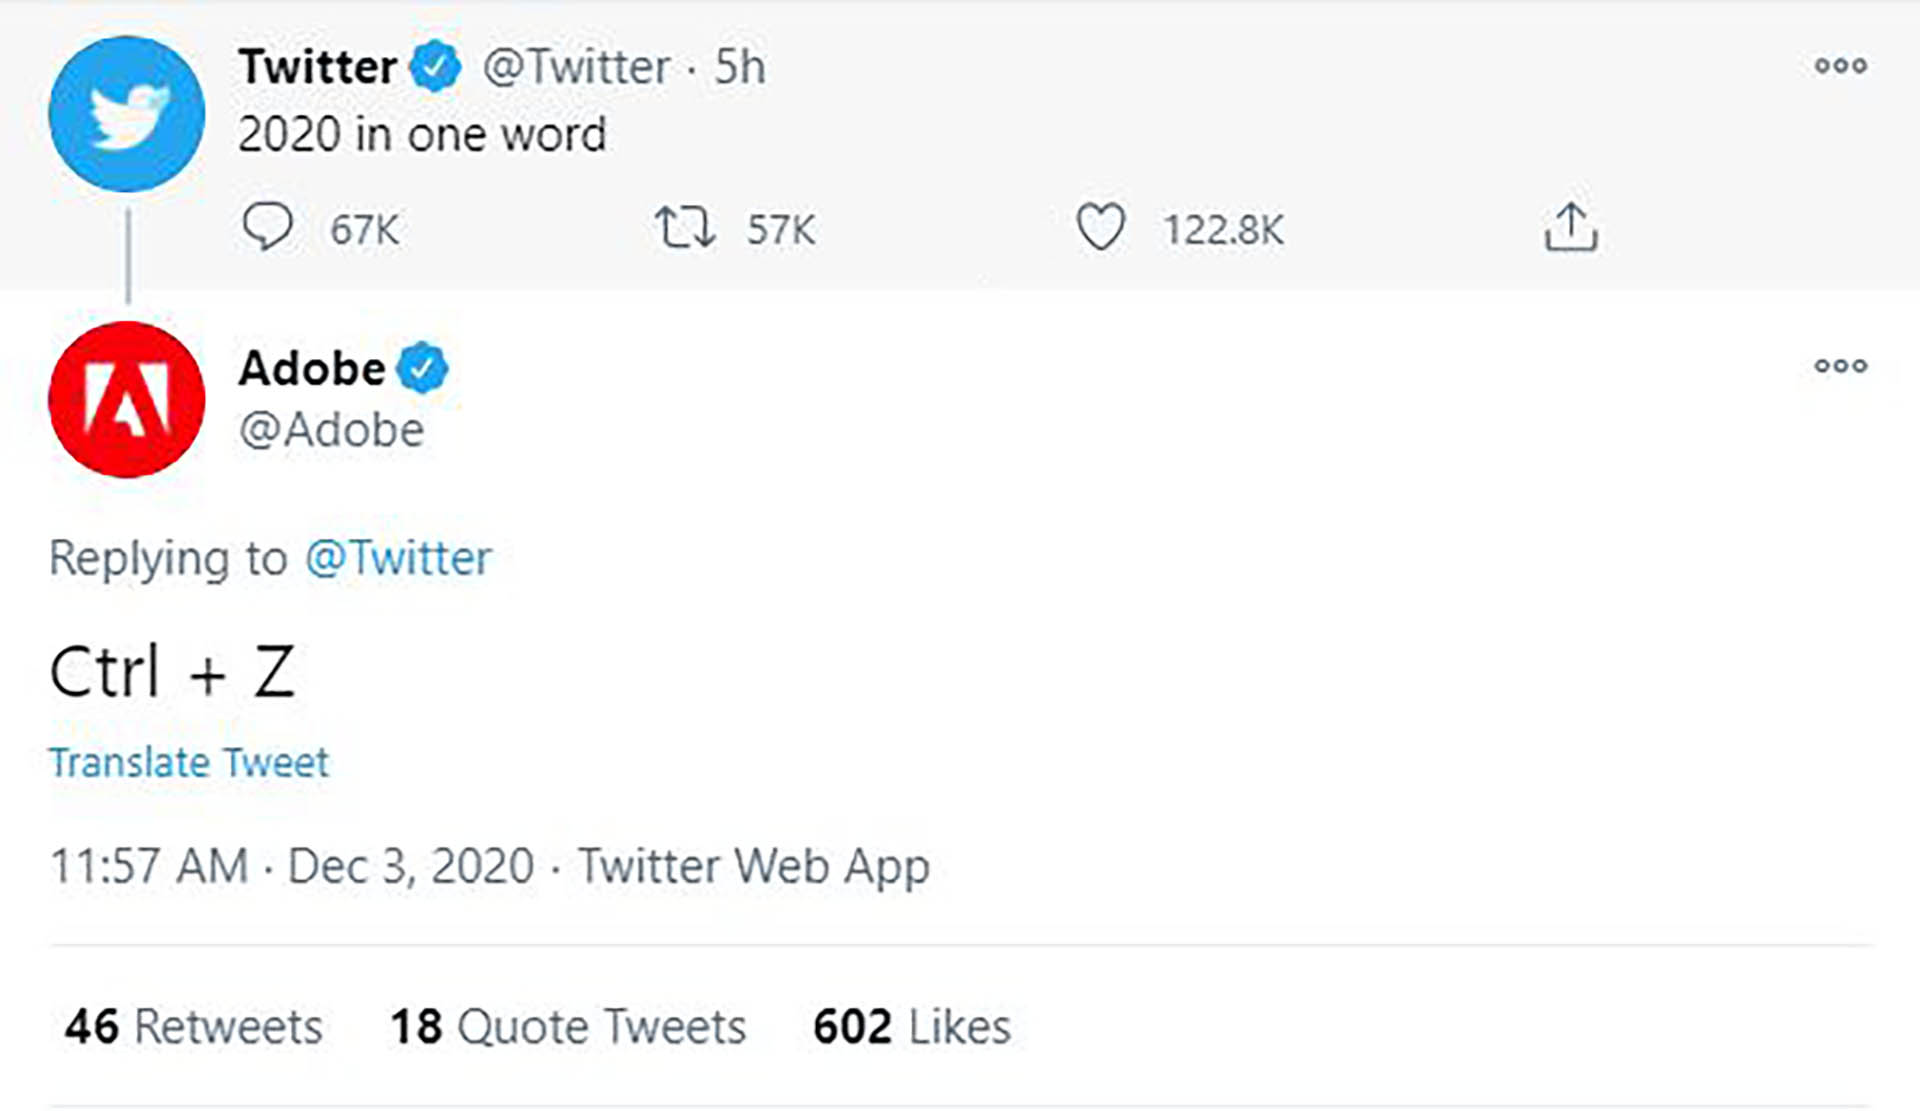 Adobe replied Twitter with one word to sum up 2020.